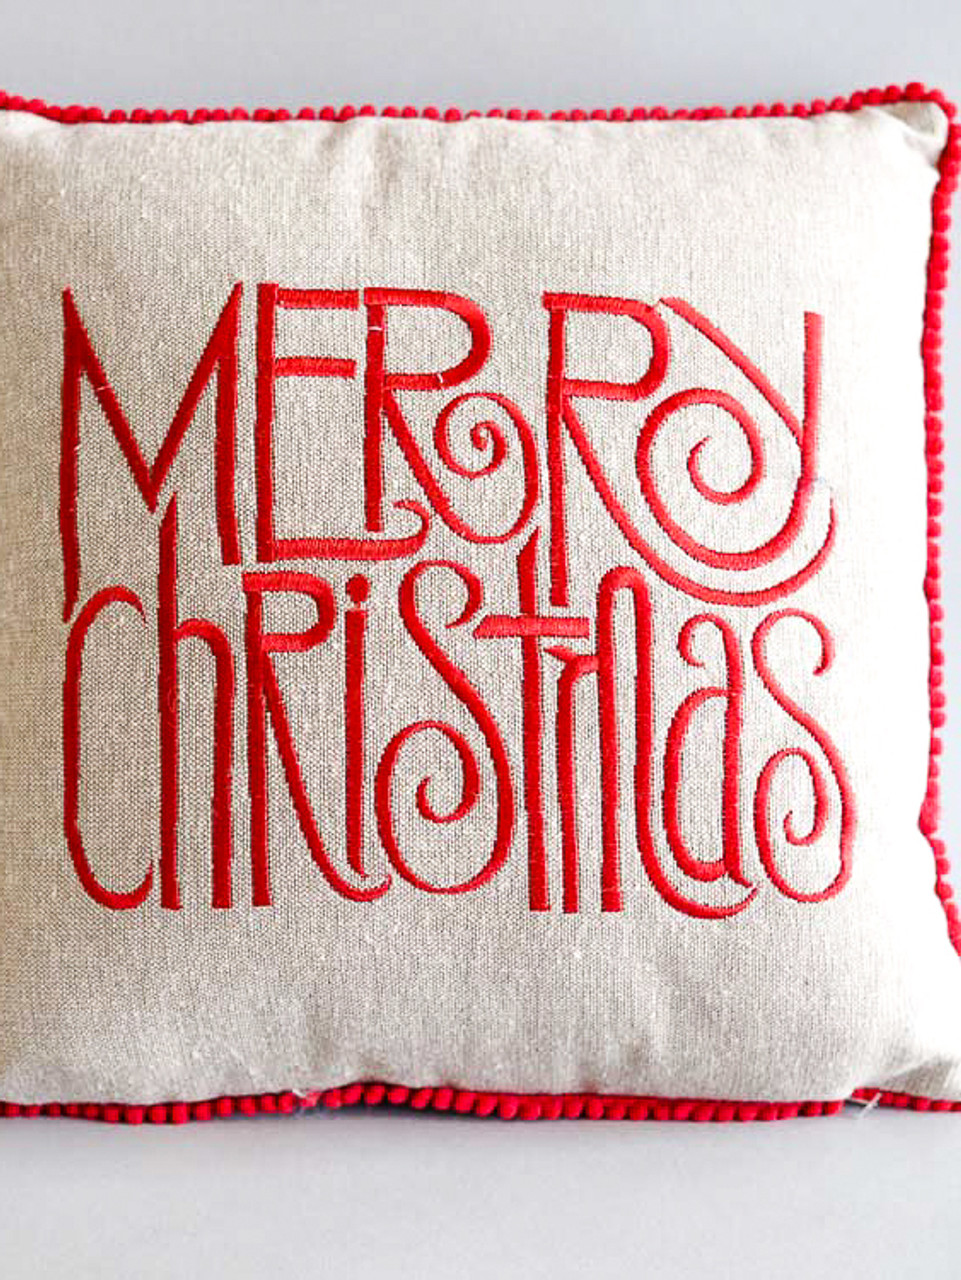 Merry Christmas pillow with red pom-pom fringe